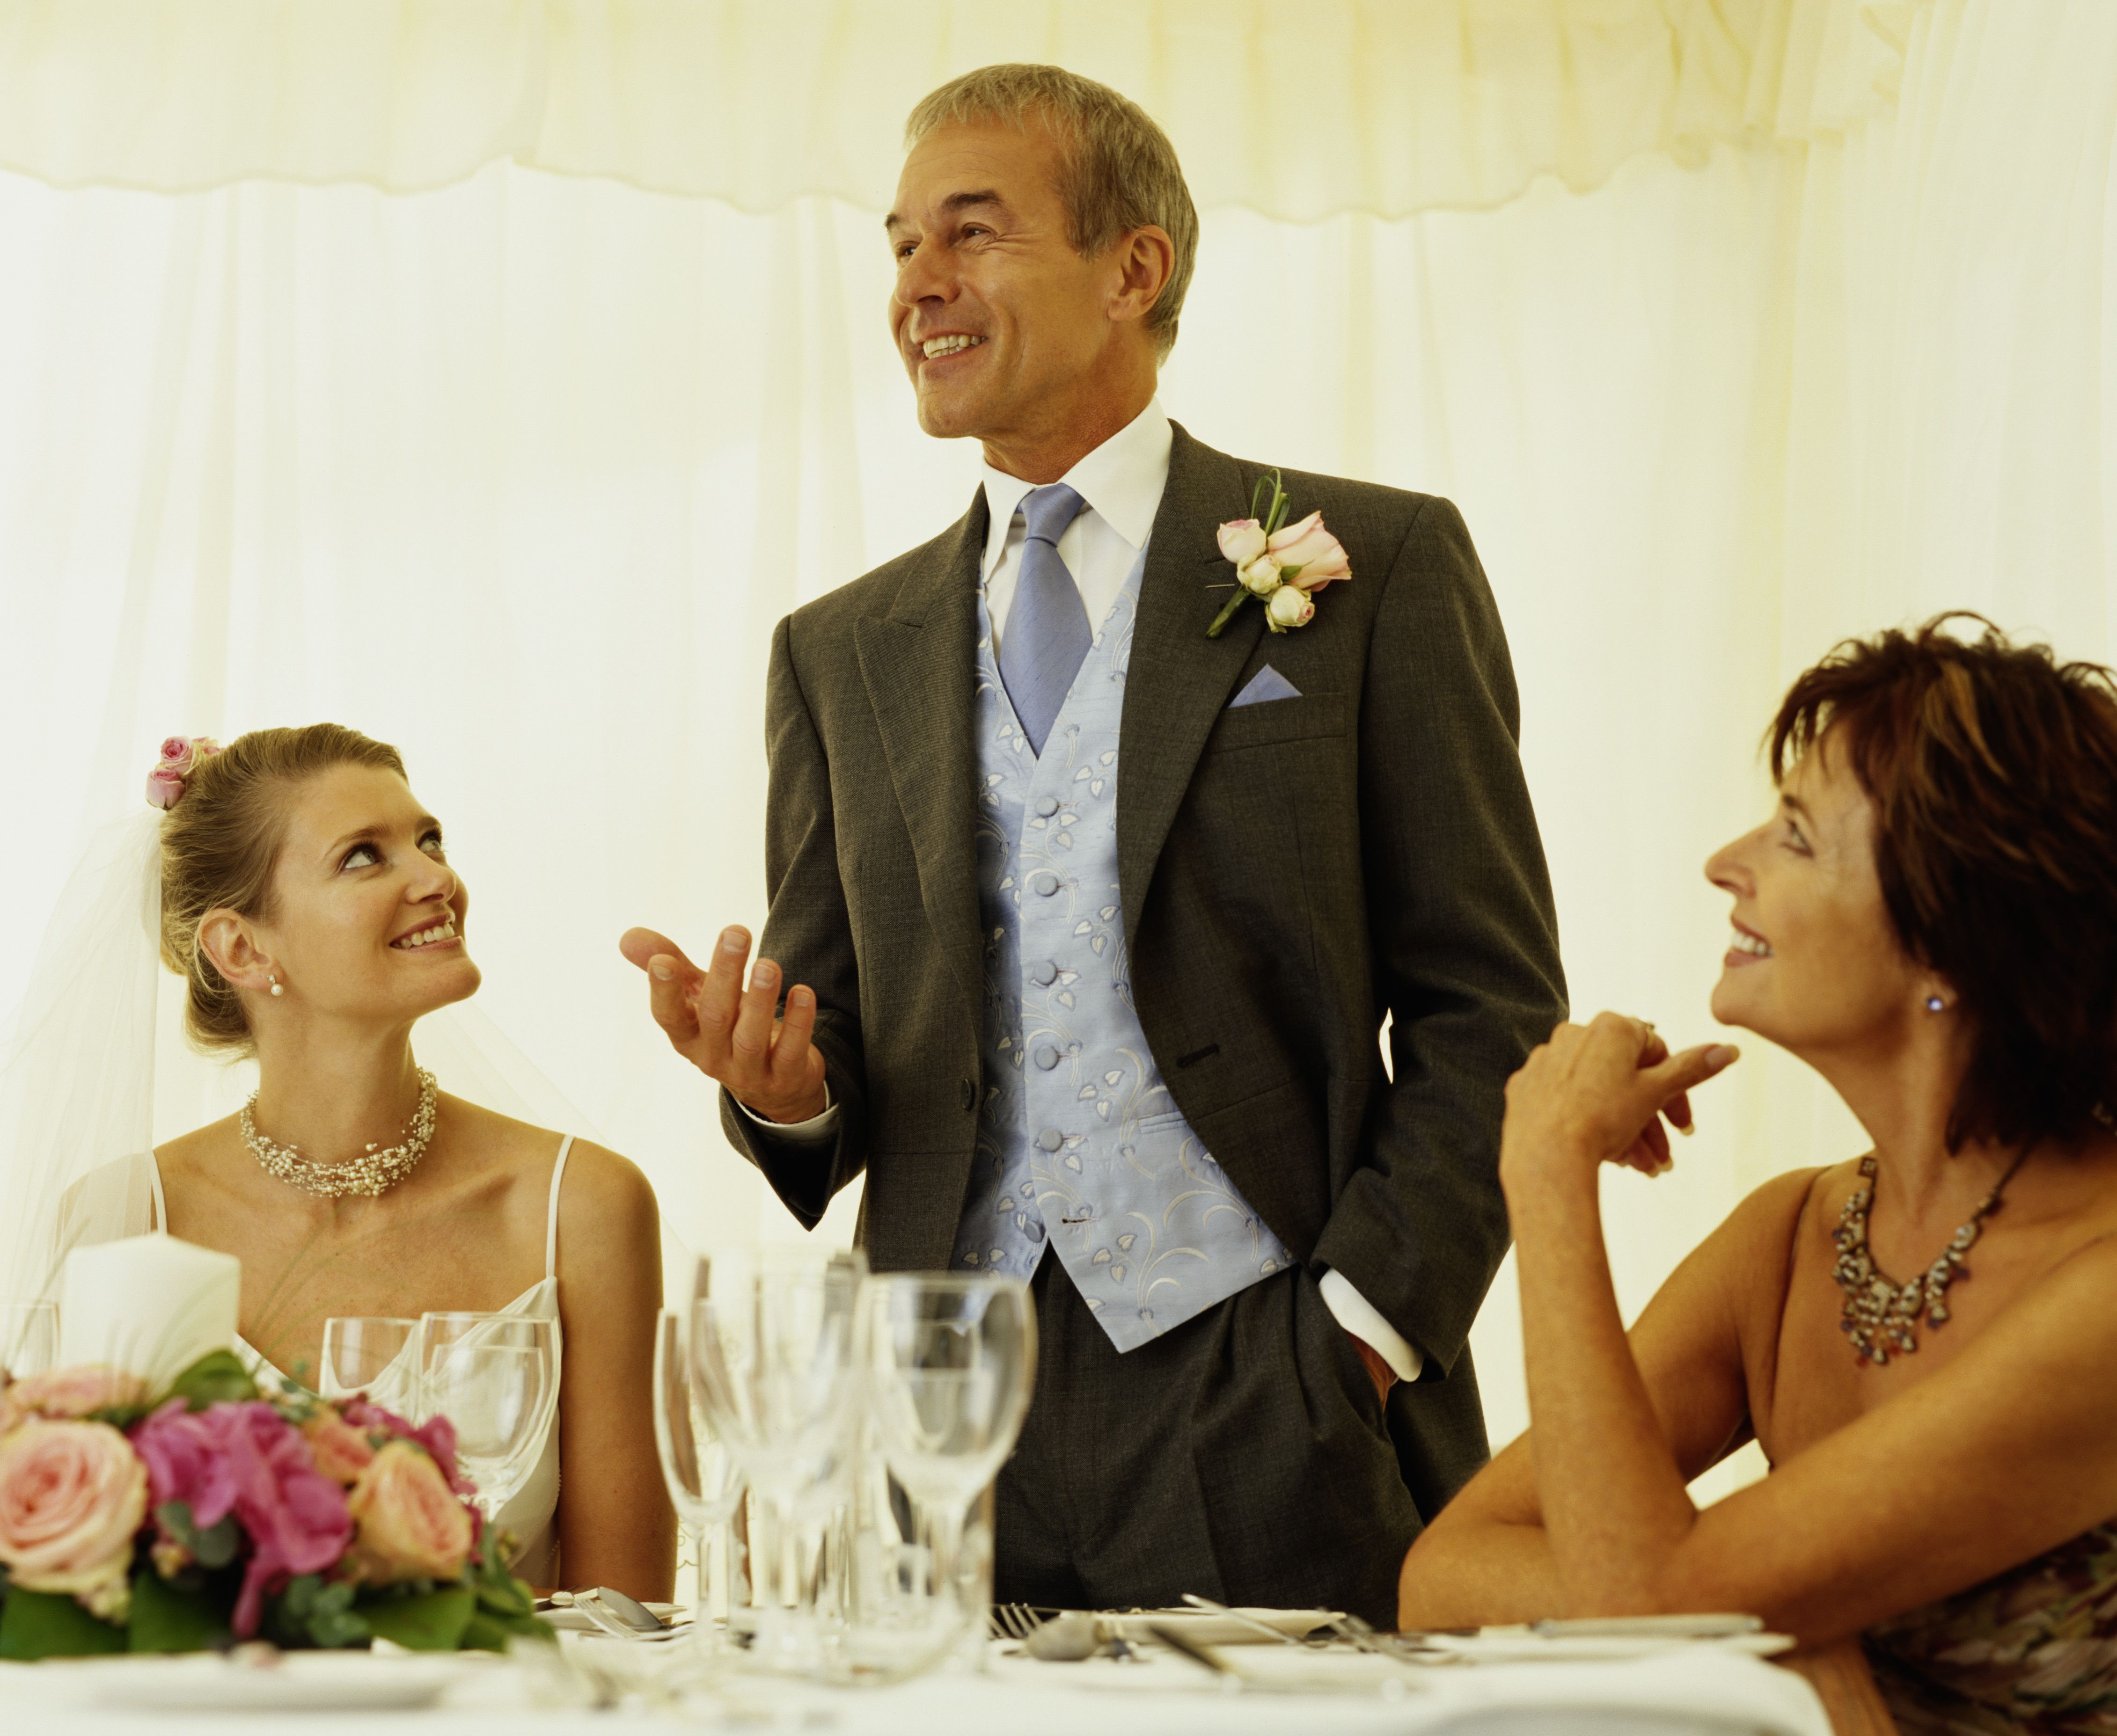 Father of the groom wedding toasts - Great Quotes For The Father Of The Bride